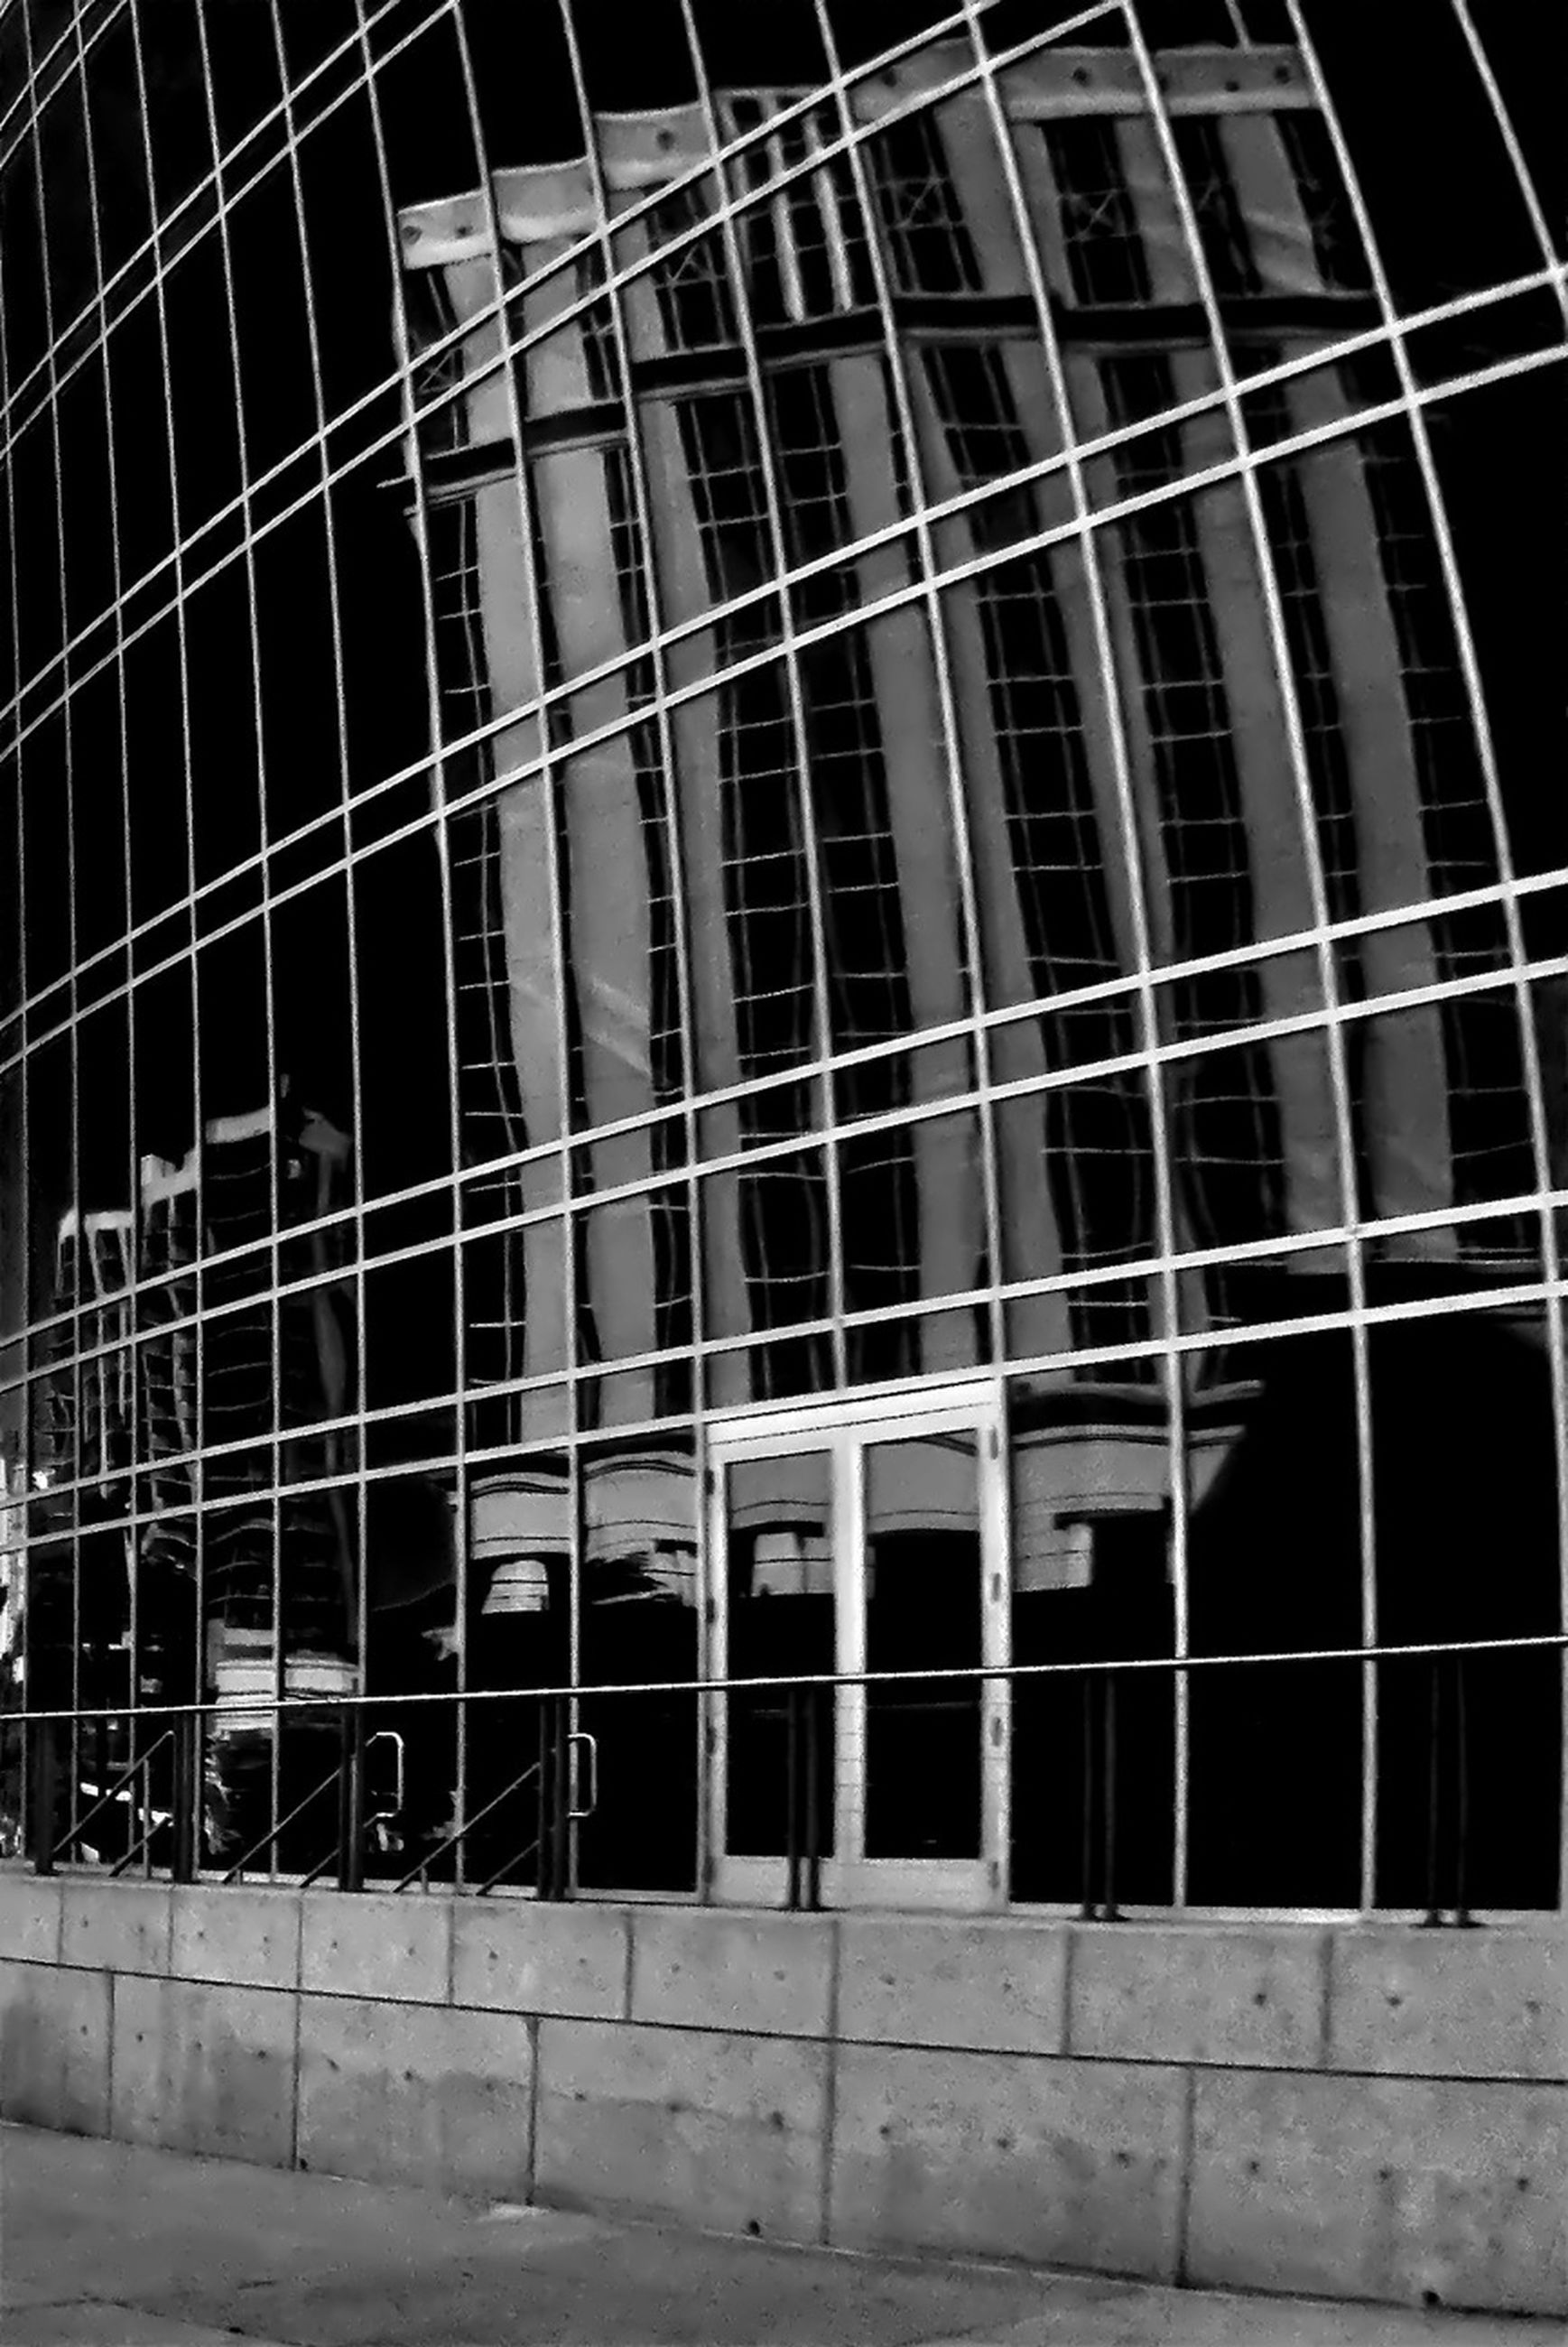 building exterior, architecture, built structure, low angle view, building, window, modern, reflection, glass - material, city, office building, outdoors, no people, day, pattern, metal grate, railing, sunlight, metal